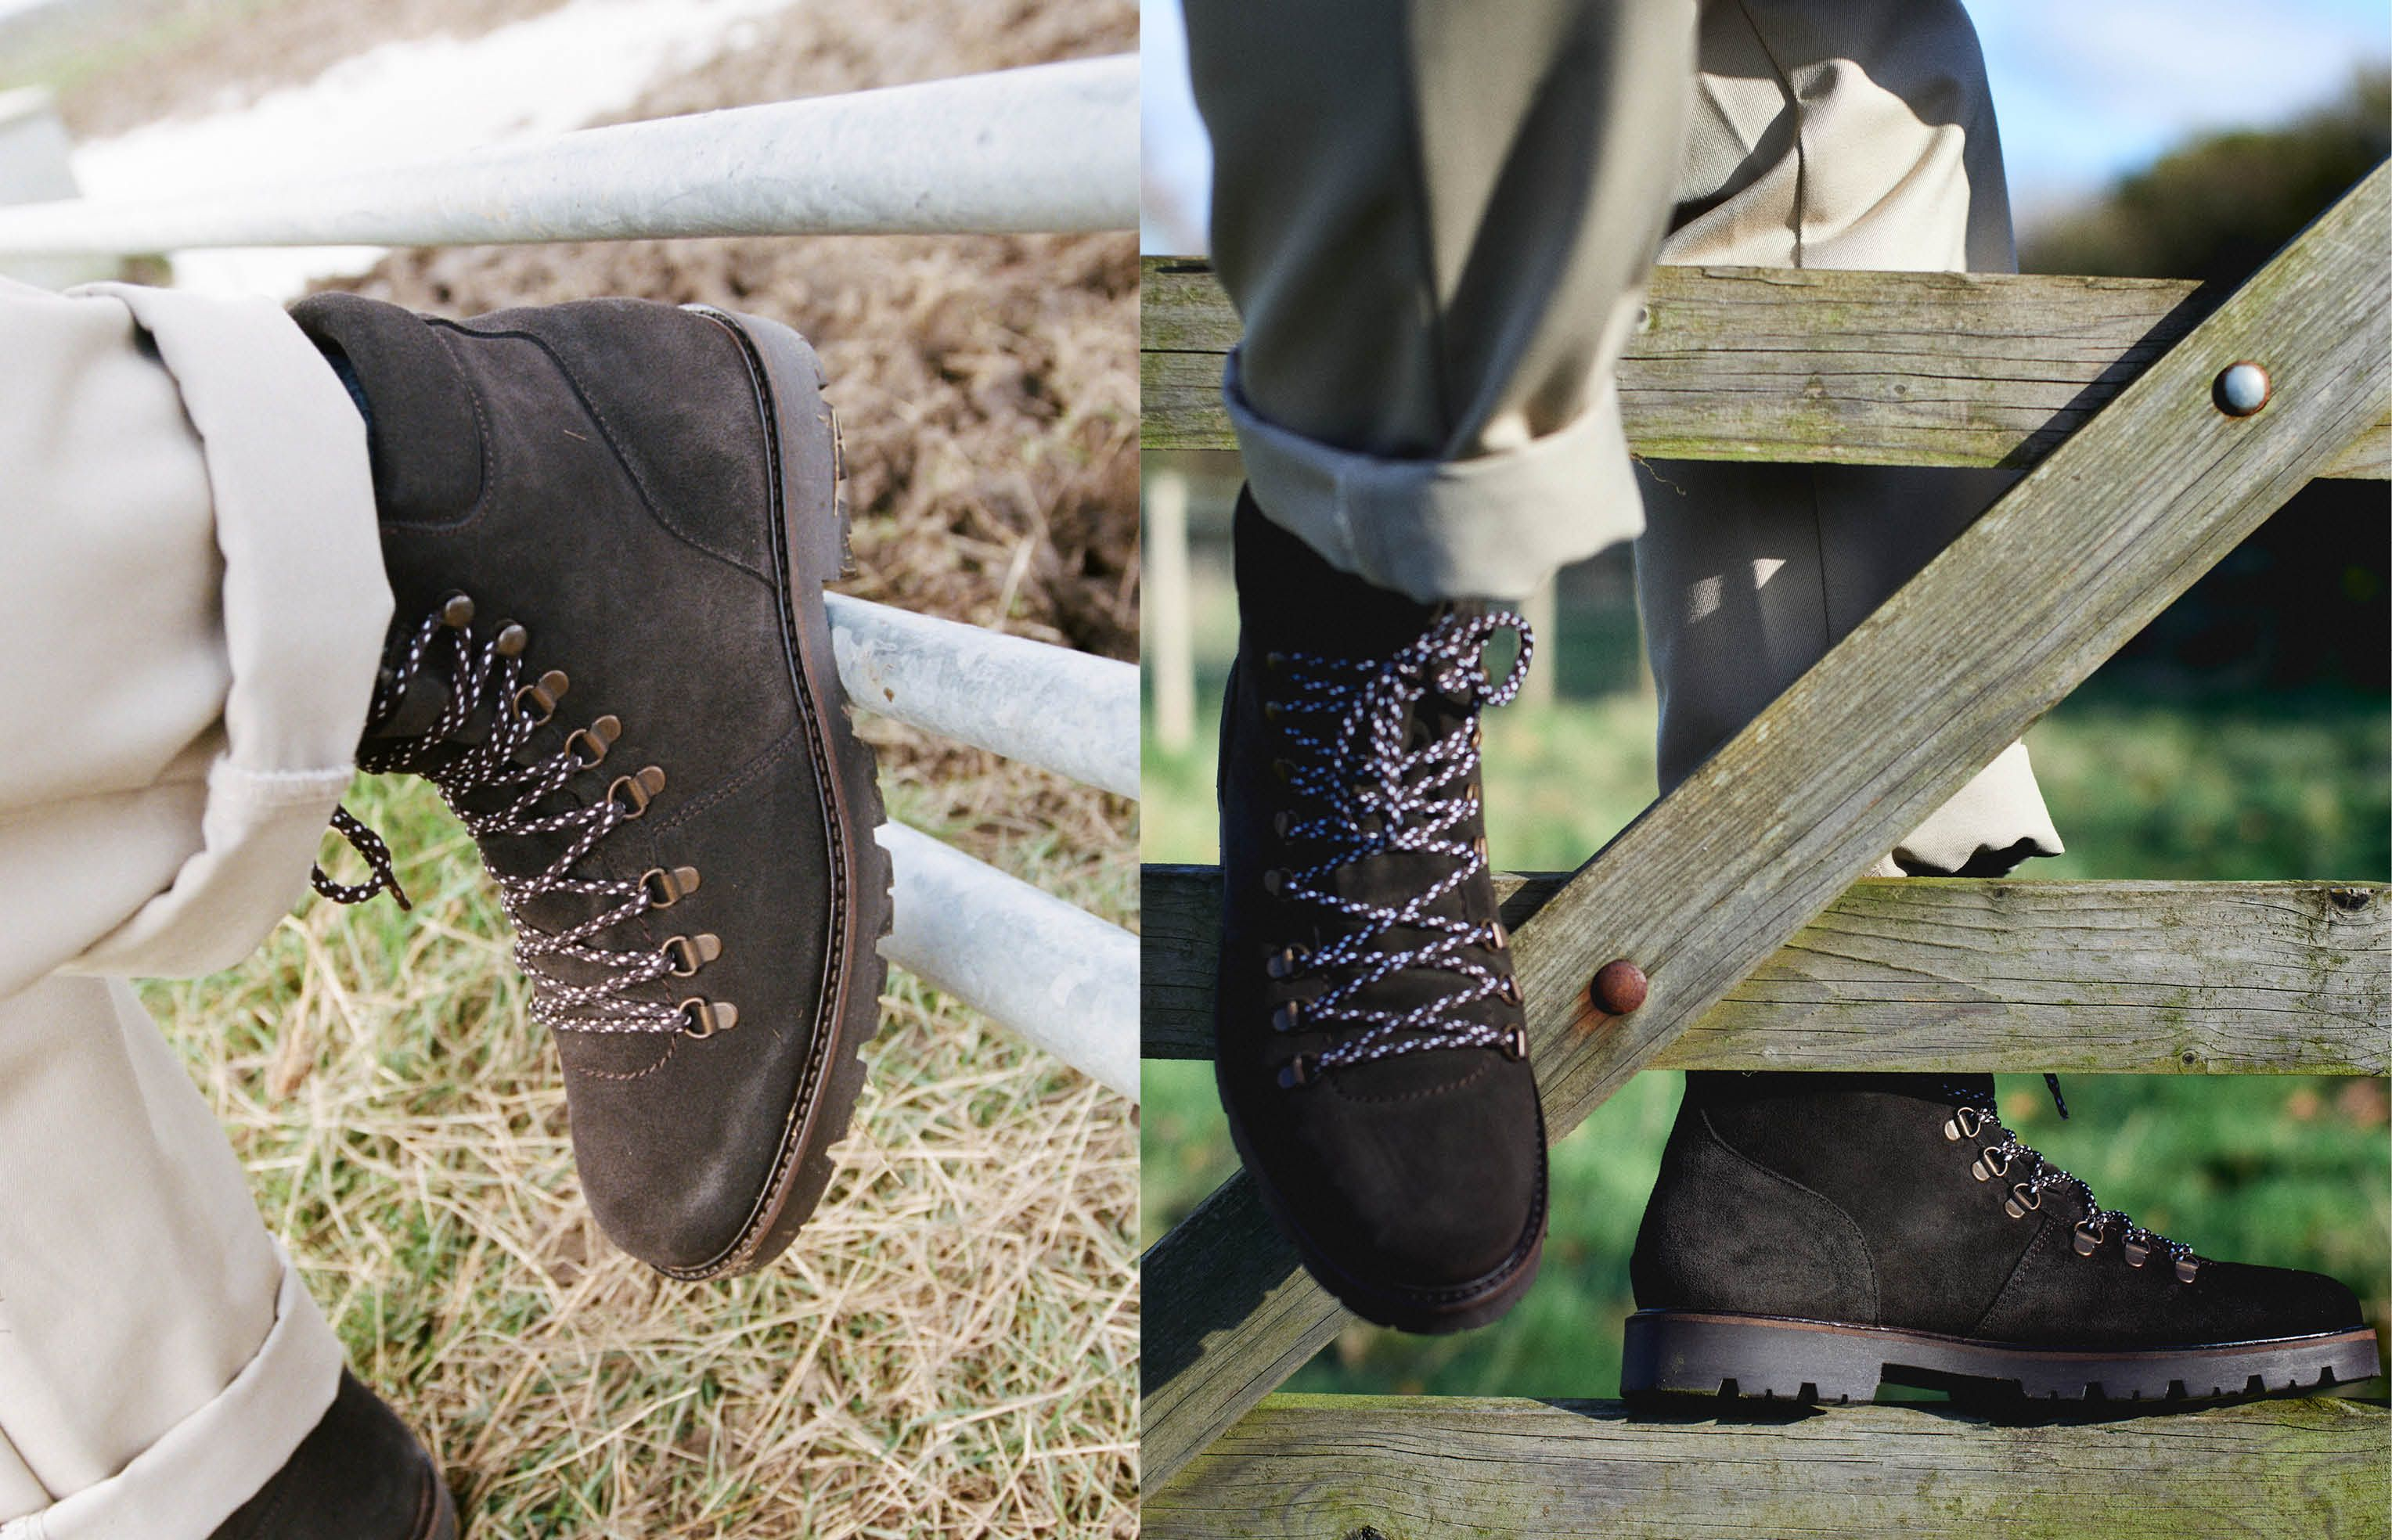 The dos and don'ts of hiking boots